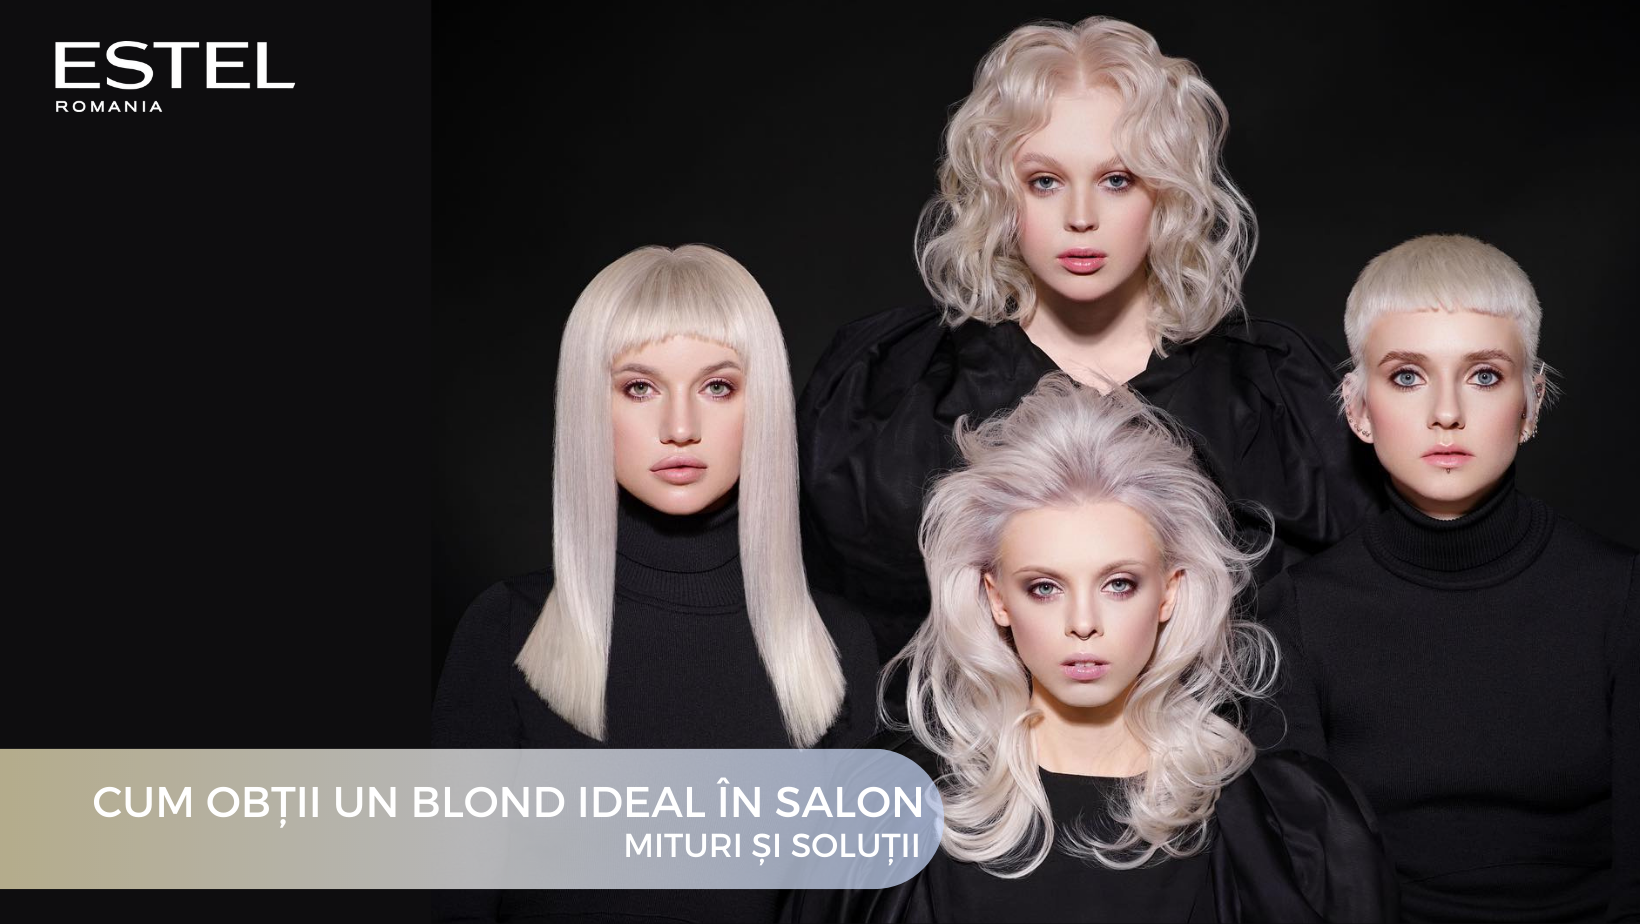 Cum obtii un blond ideal in salon. Mituri si solutii